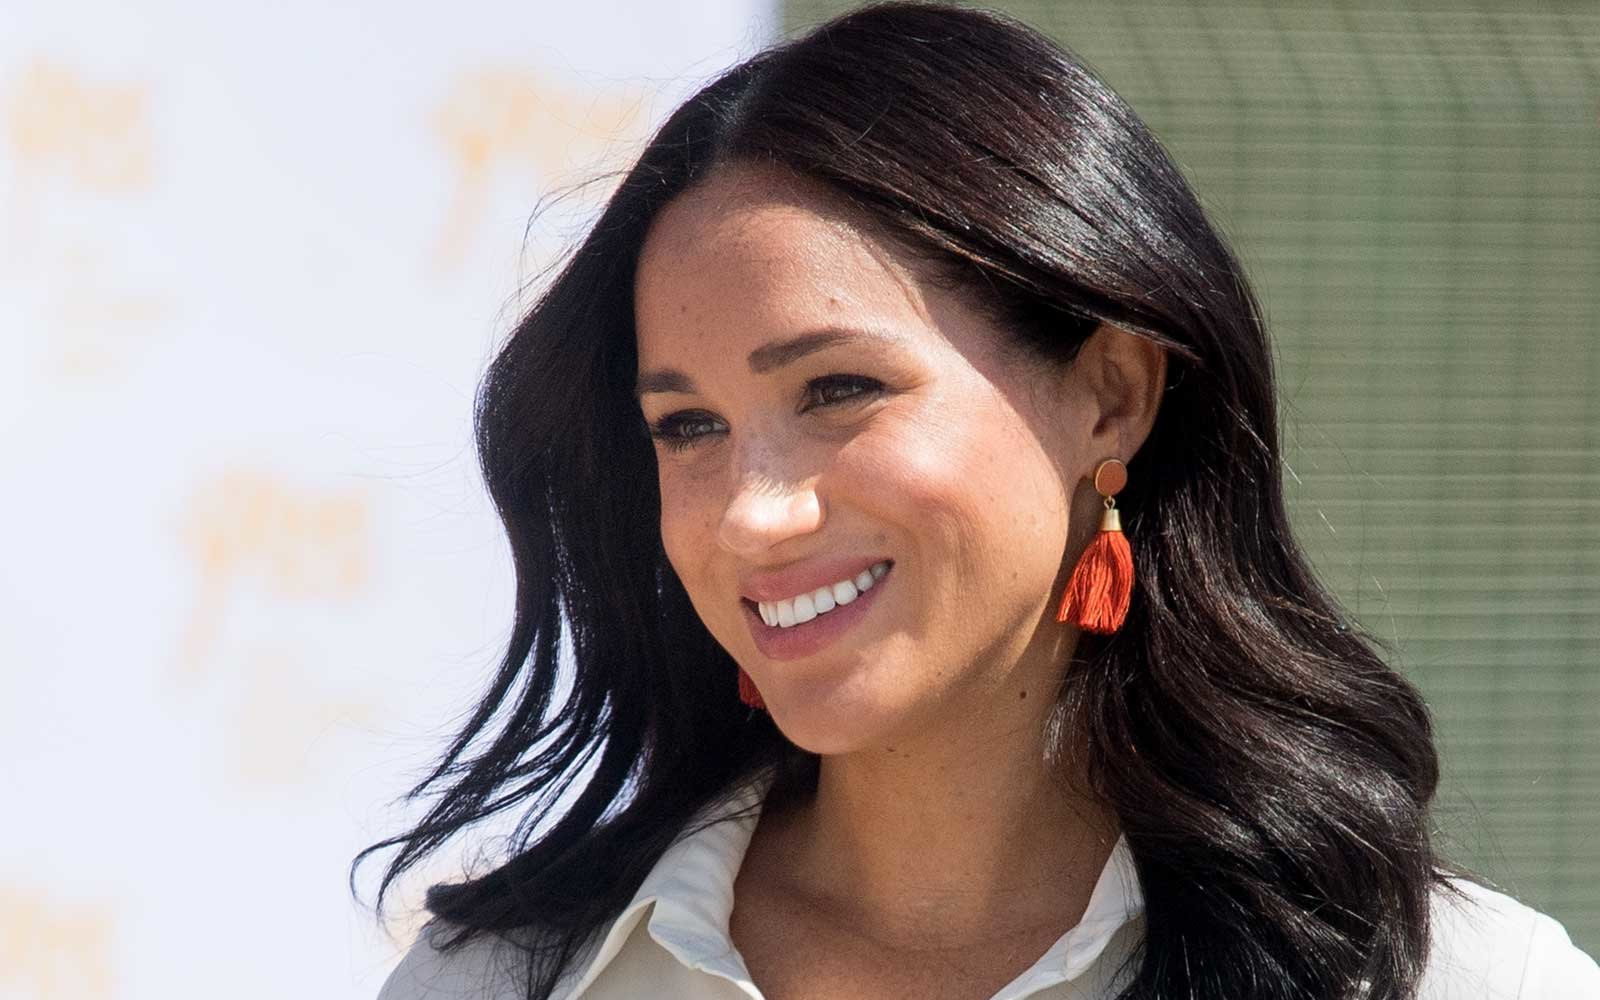 The one reason Meghan Markle isn't a British citizen yet